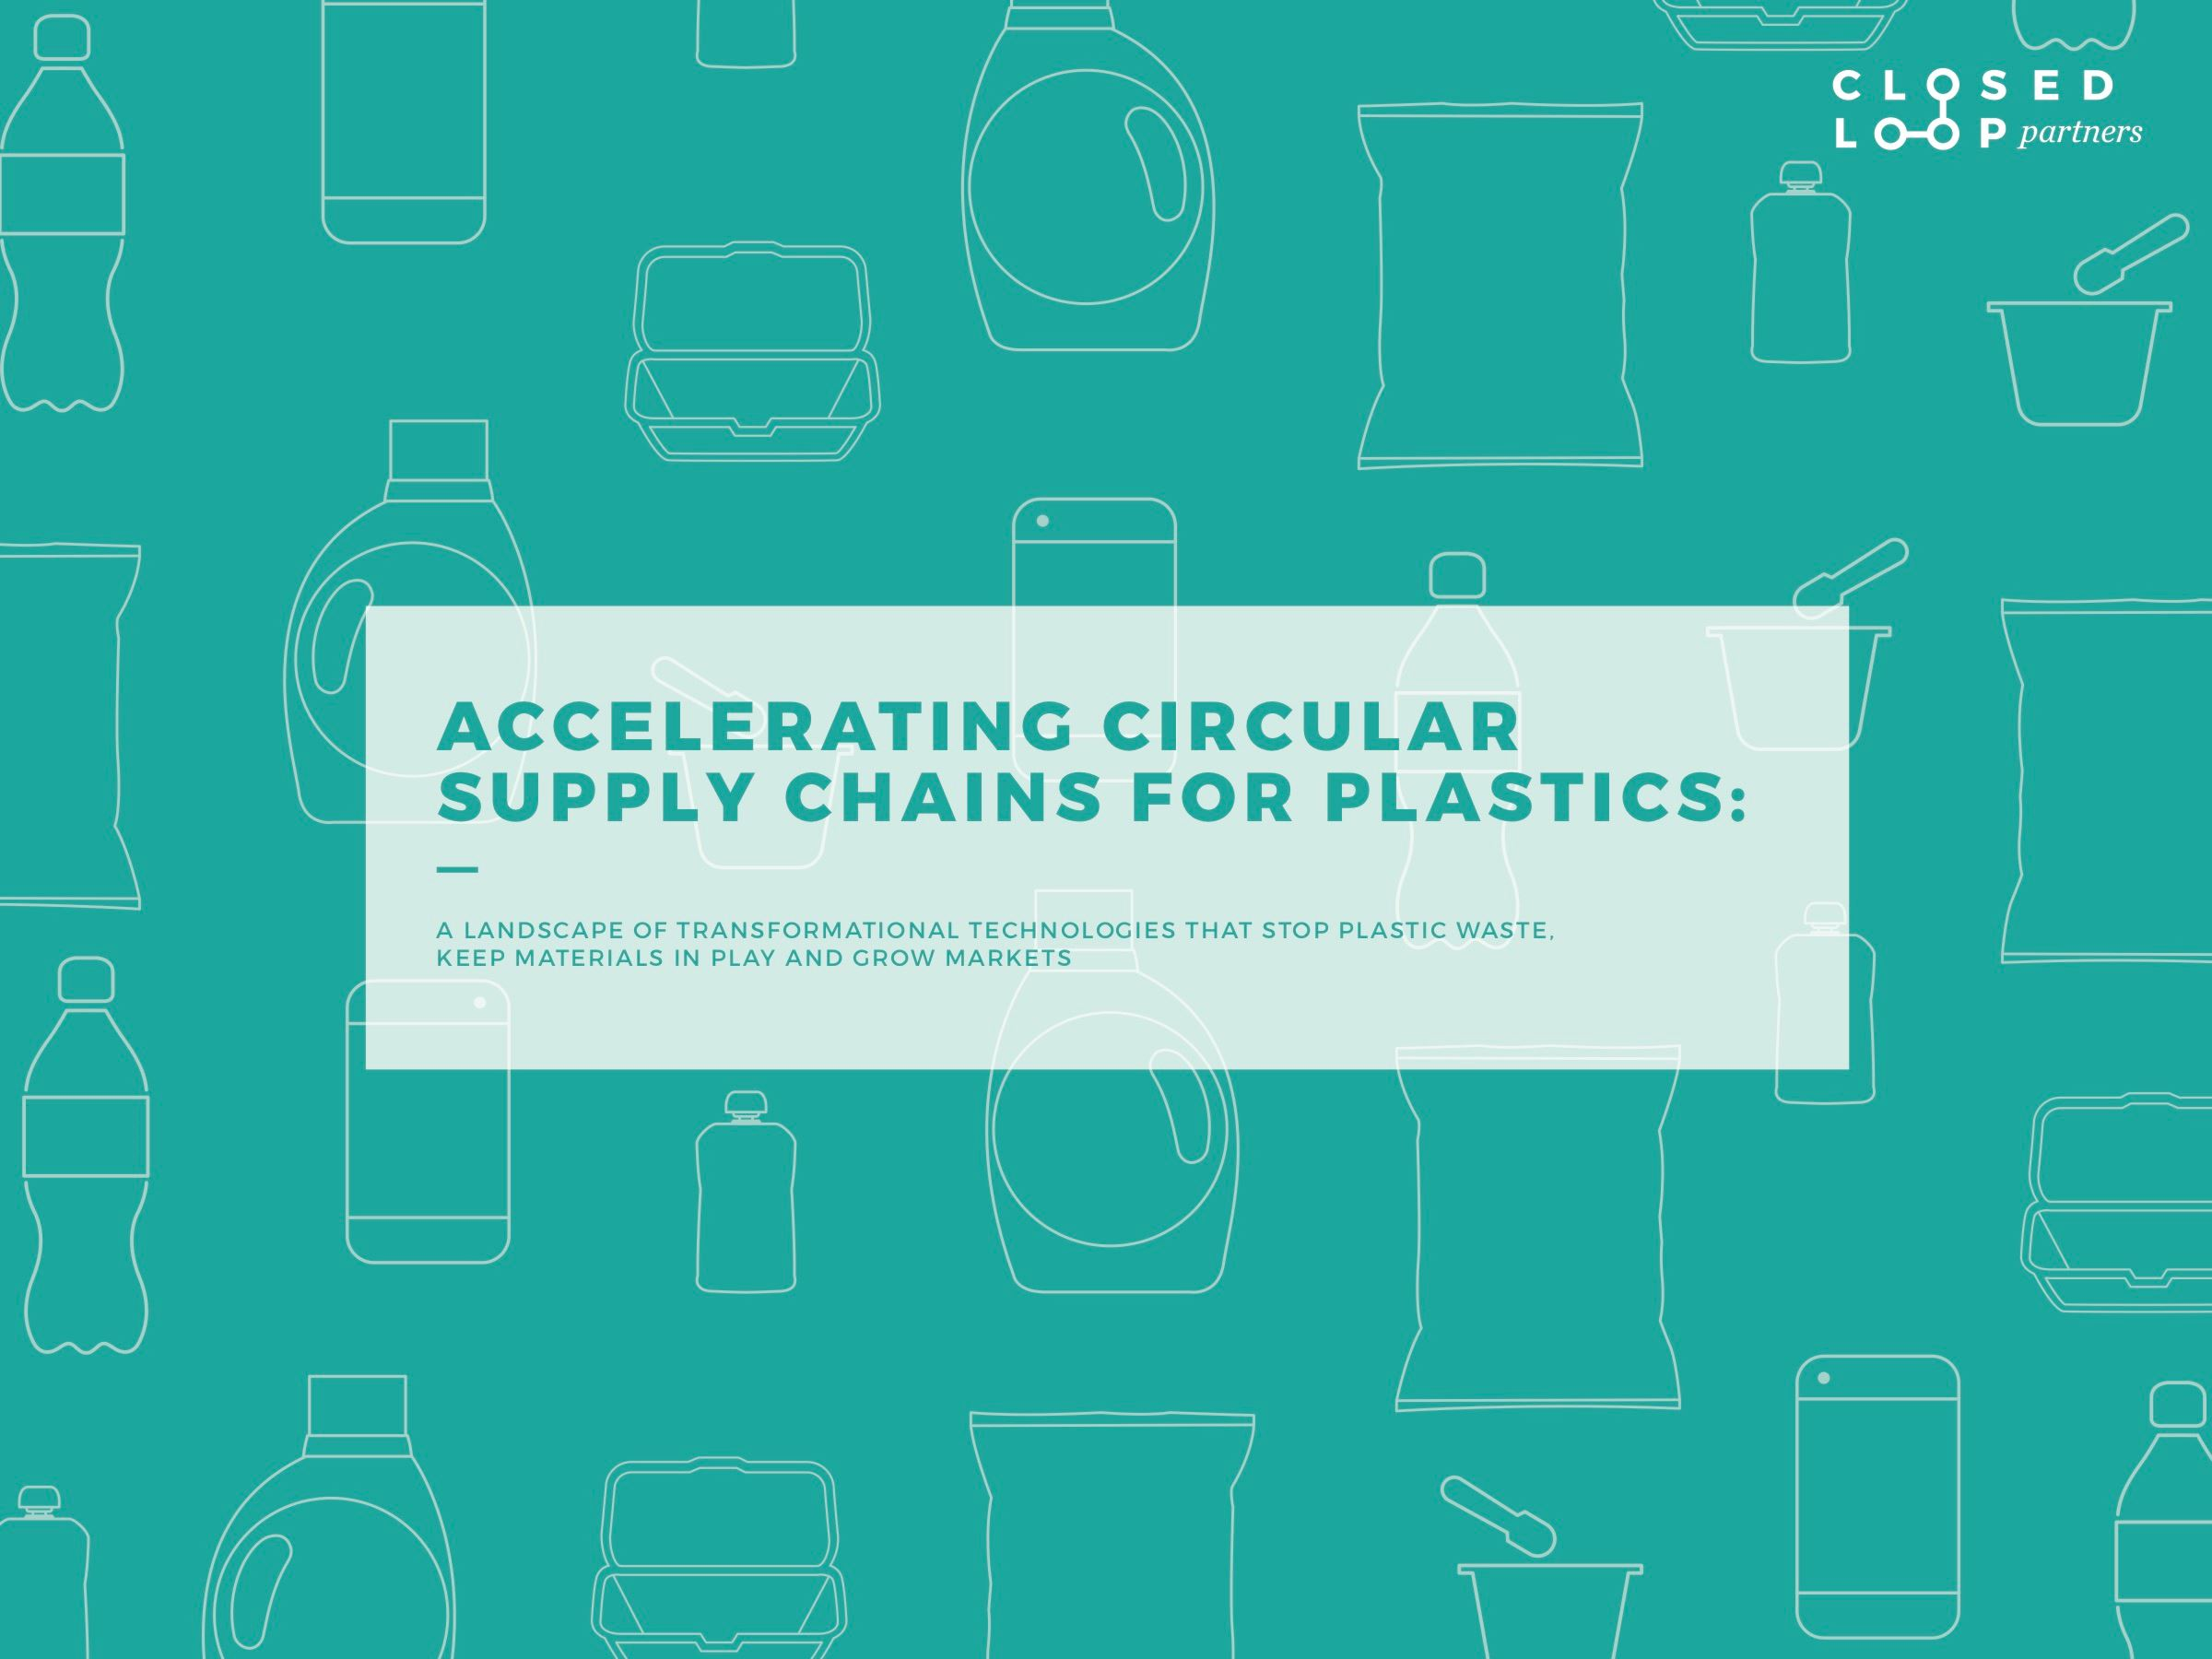 CLP_Circular_Supply_Chains_for_Plastics